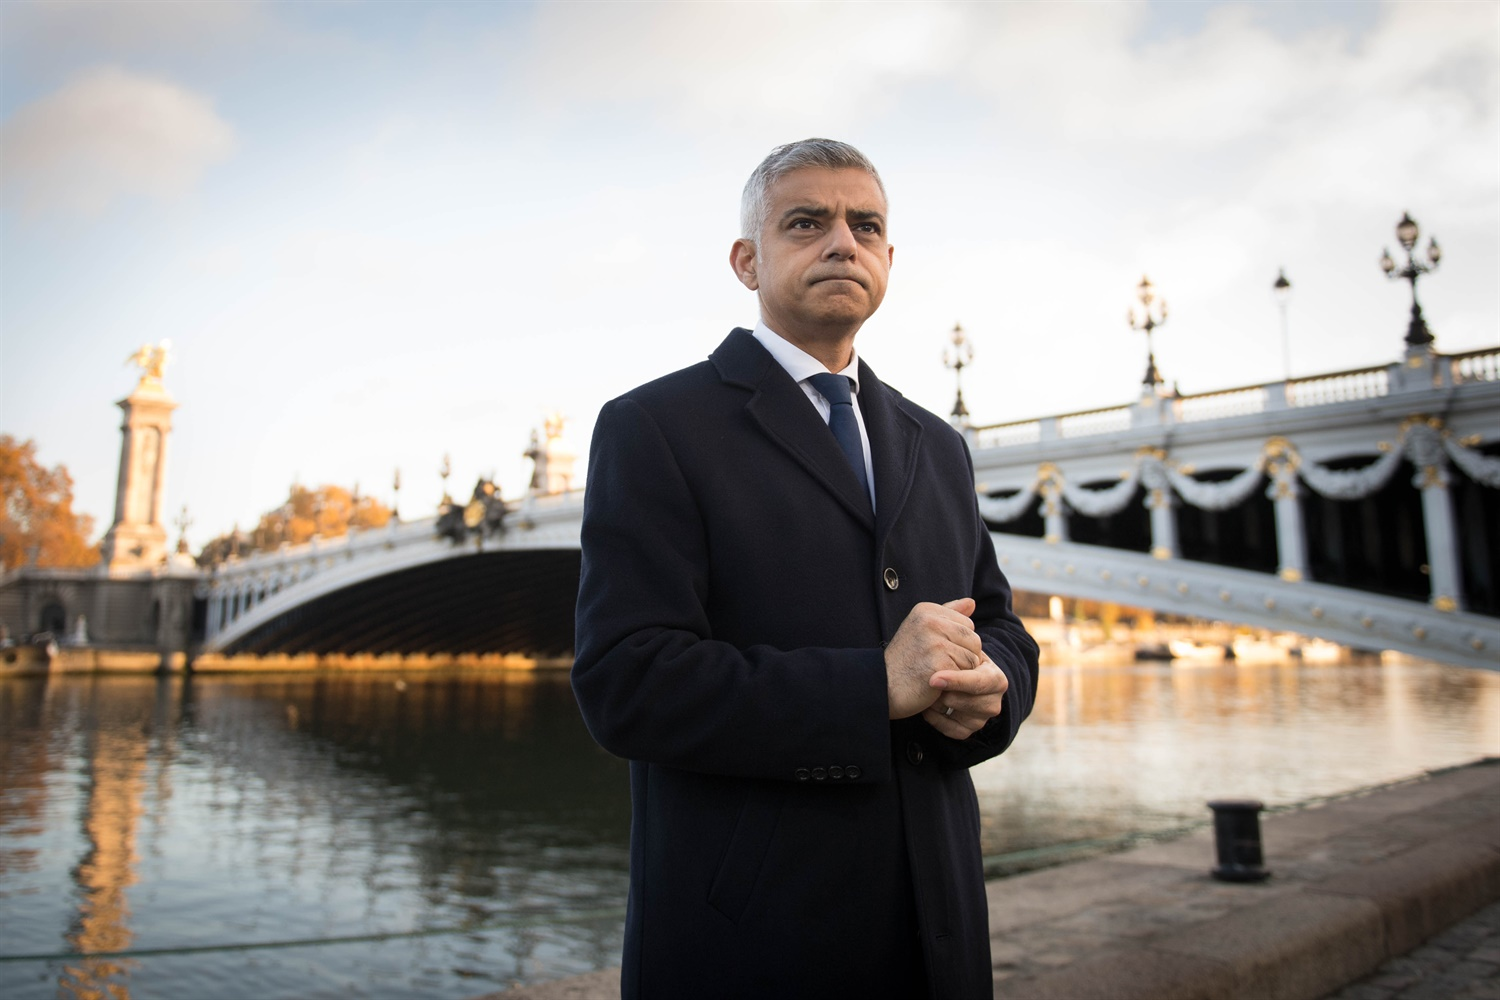 London mayor criticised after appointing former auditor and advisor to investigate Crossrail delays